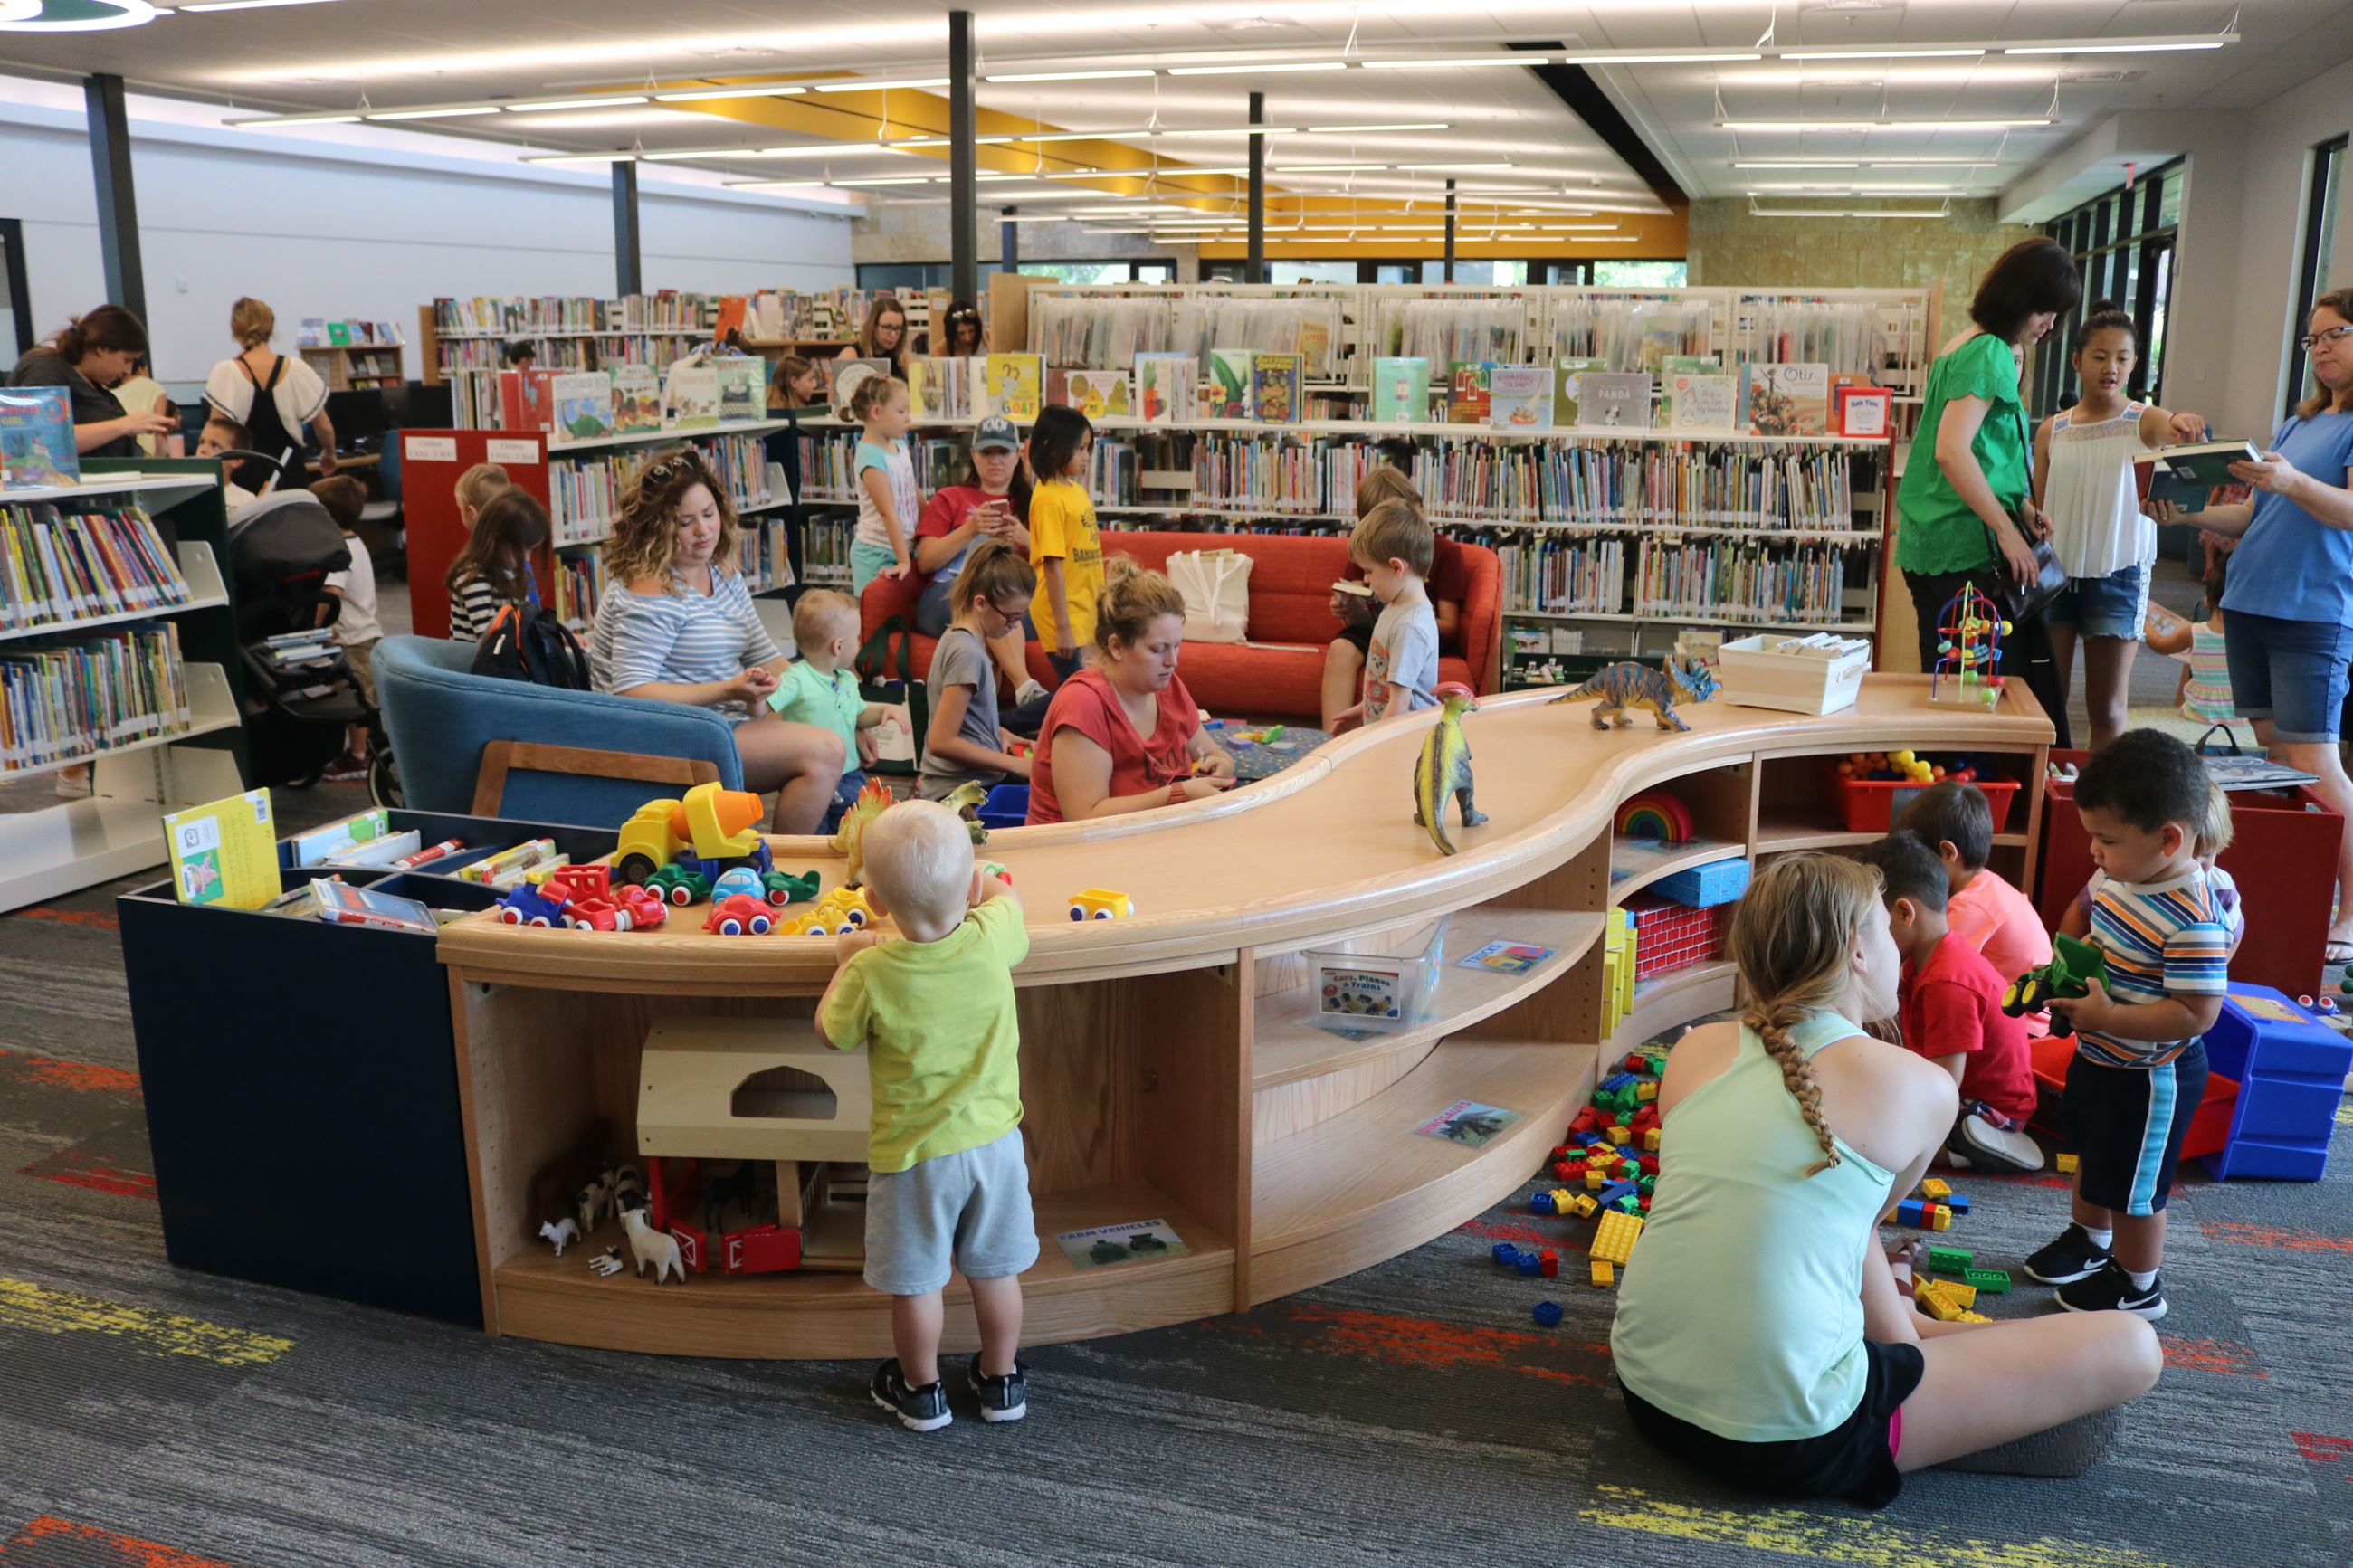 New Library Opening - Kids Playing